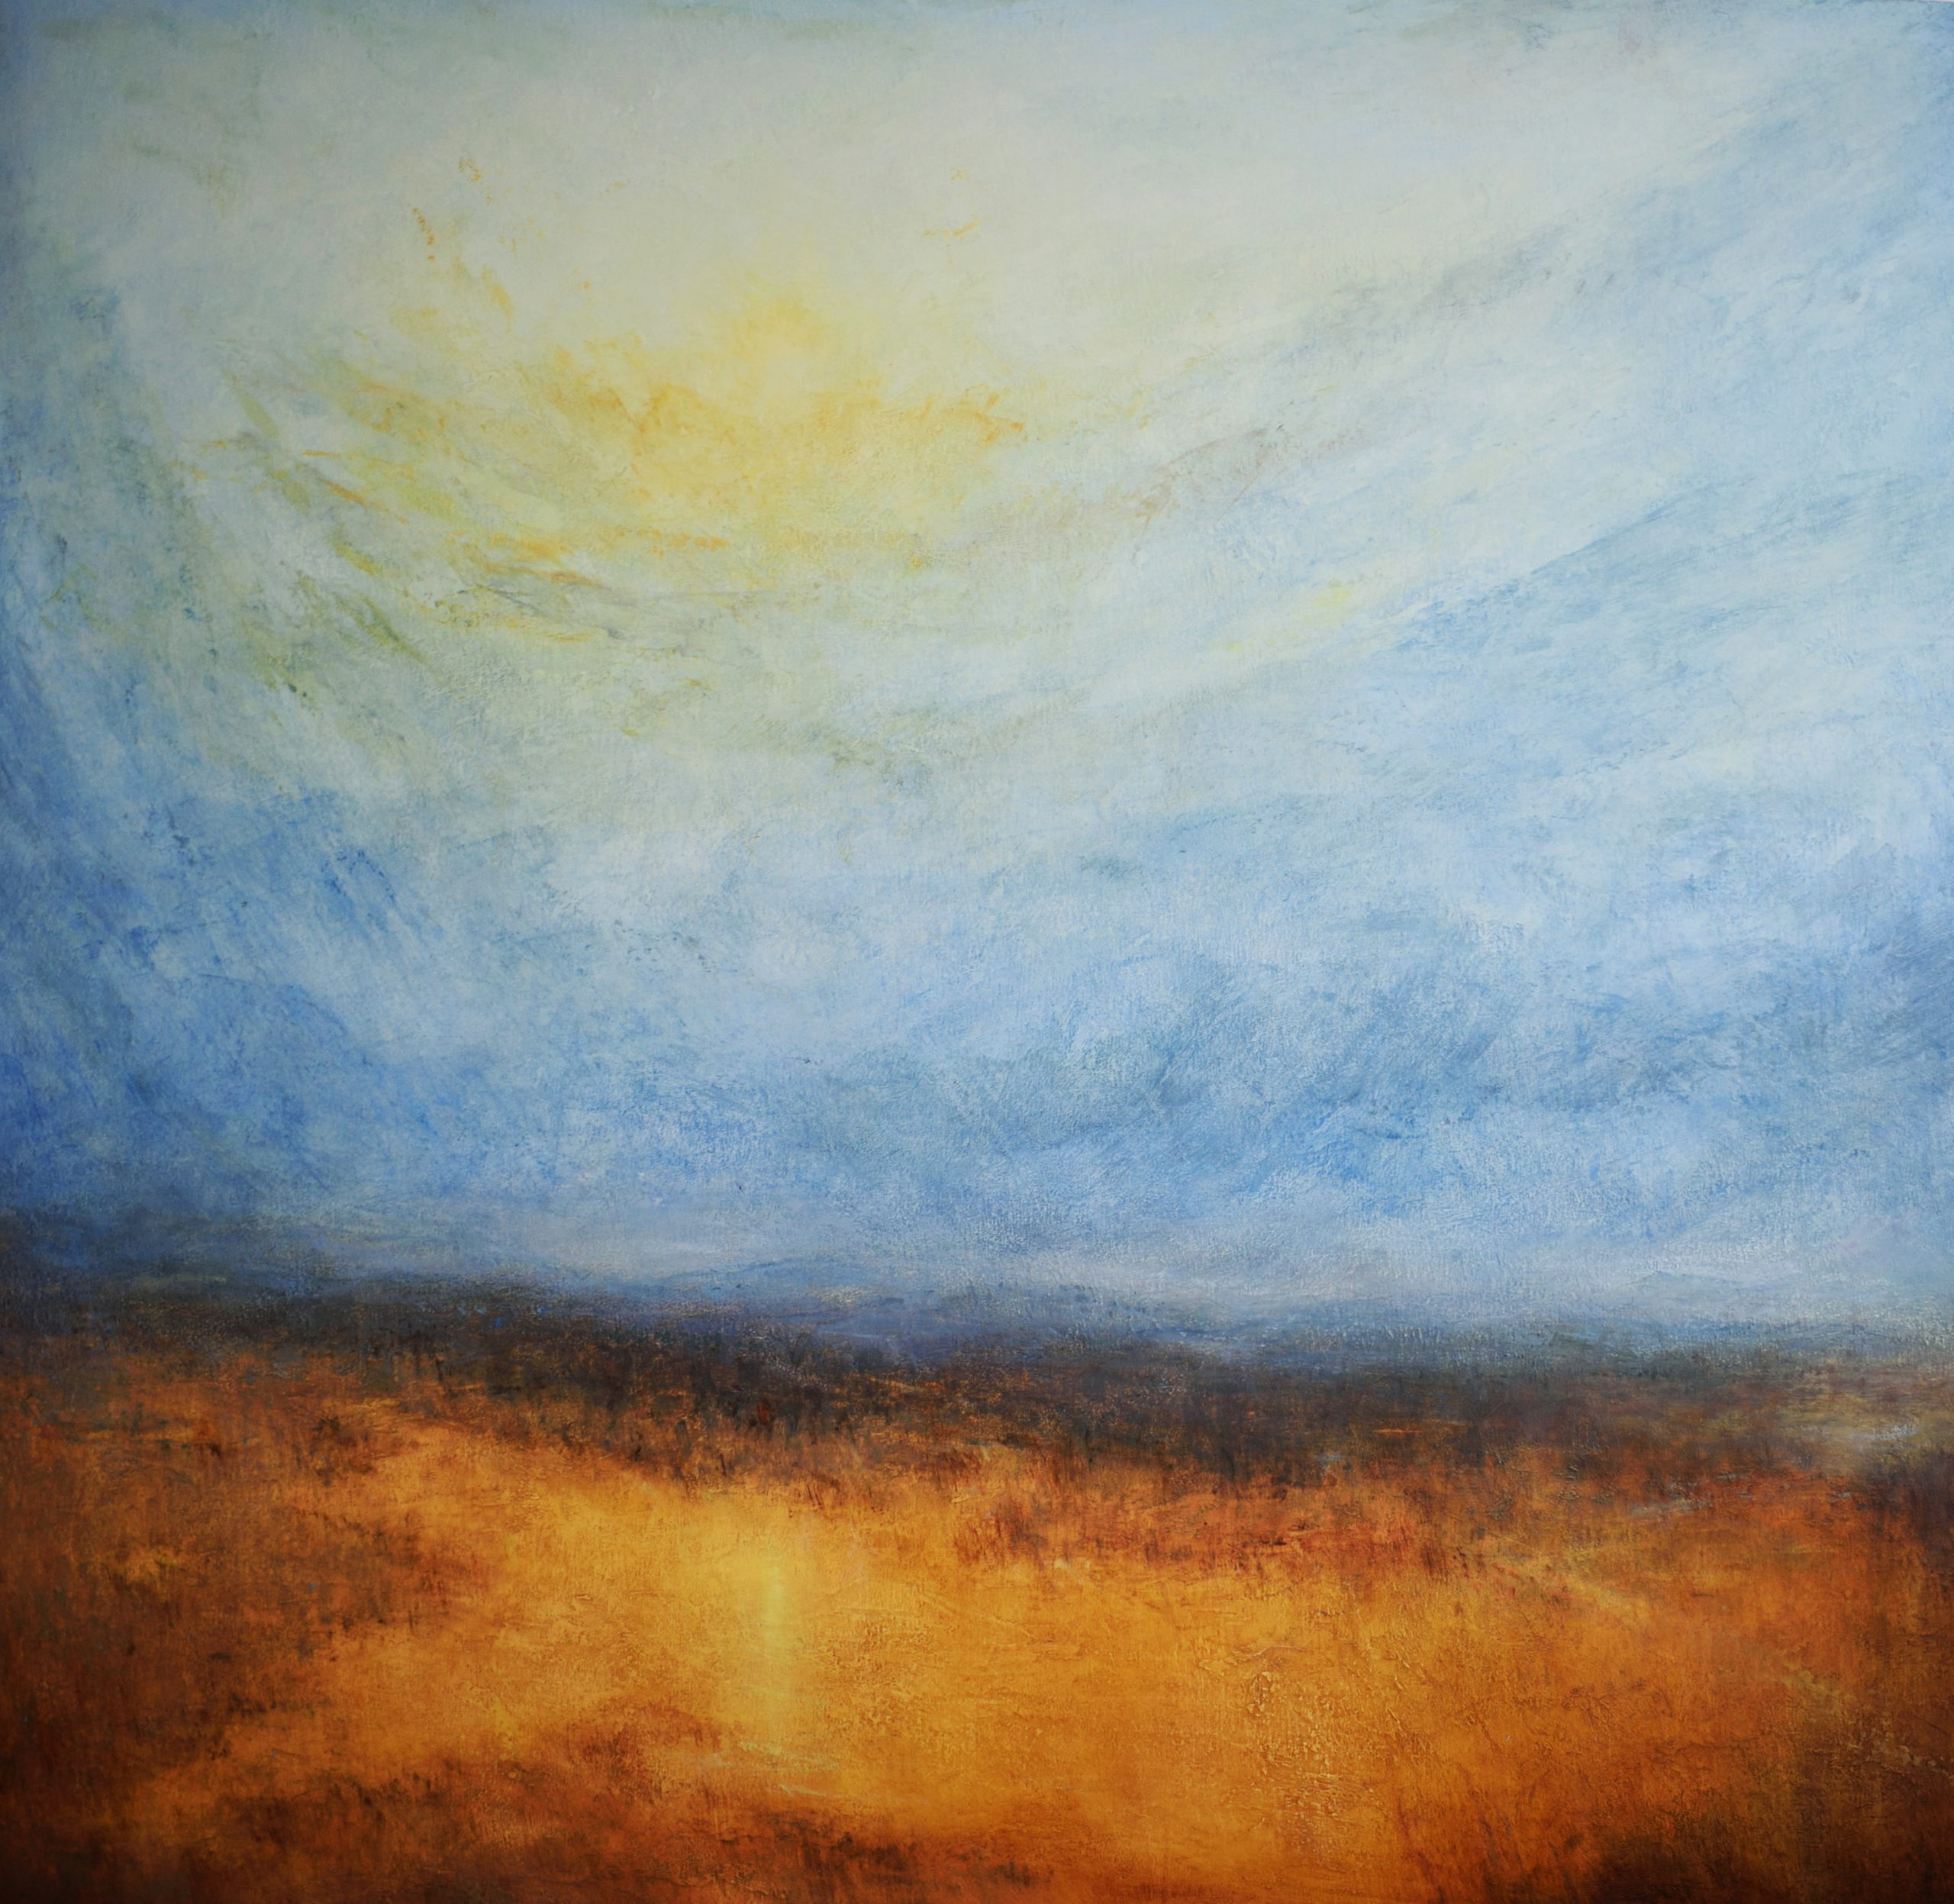 13.The Gloaming, 100cm x 100cm, Oil on board, 2020